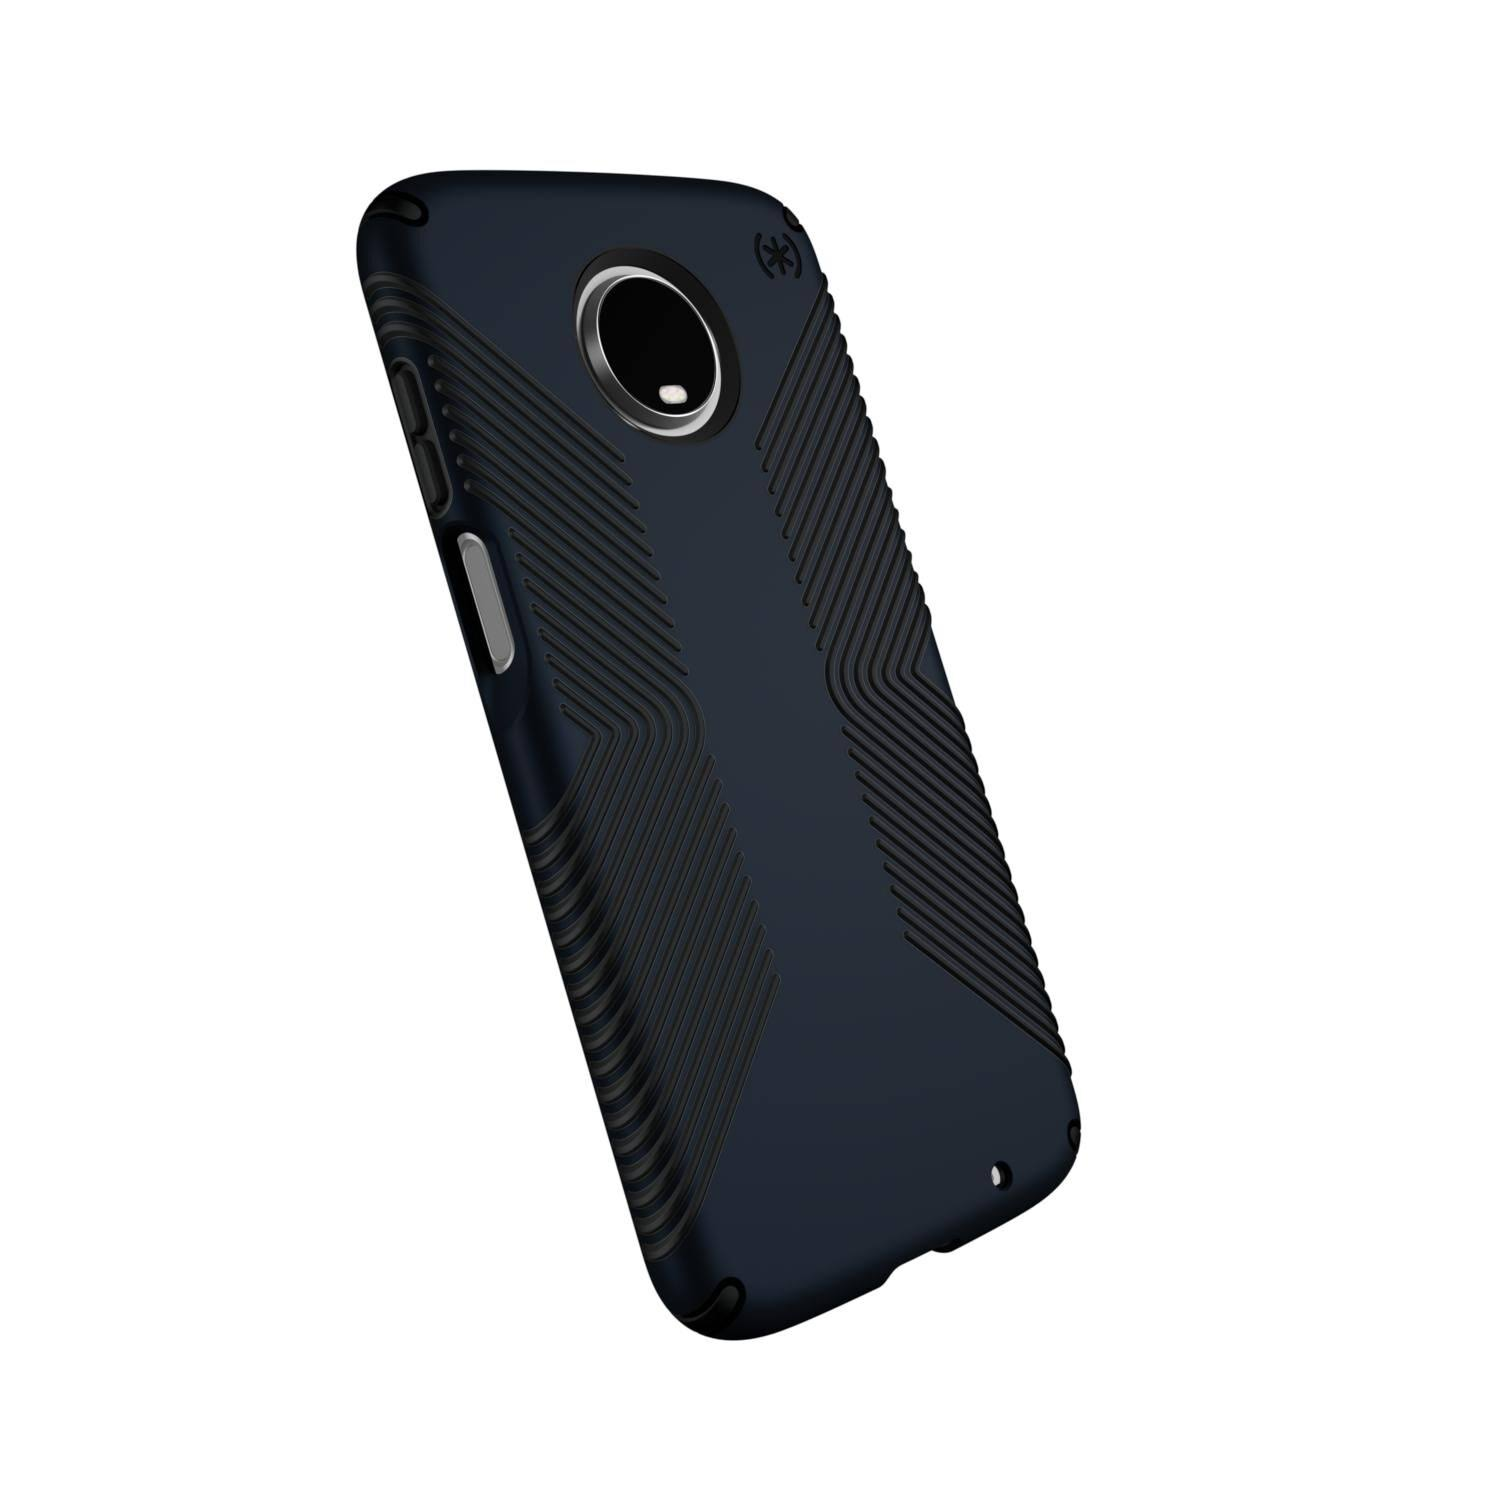 Speck Presidio Grip Case For Motorola Moto Z3 Play - Eclipse Blue and Carbon Black